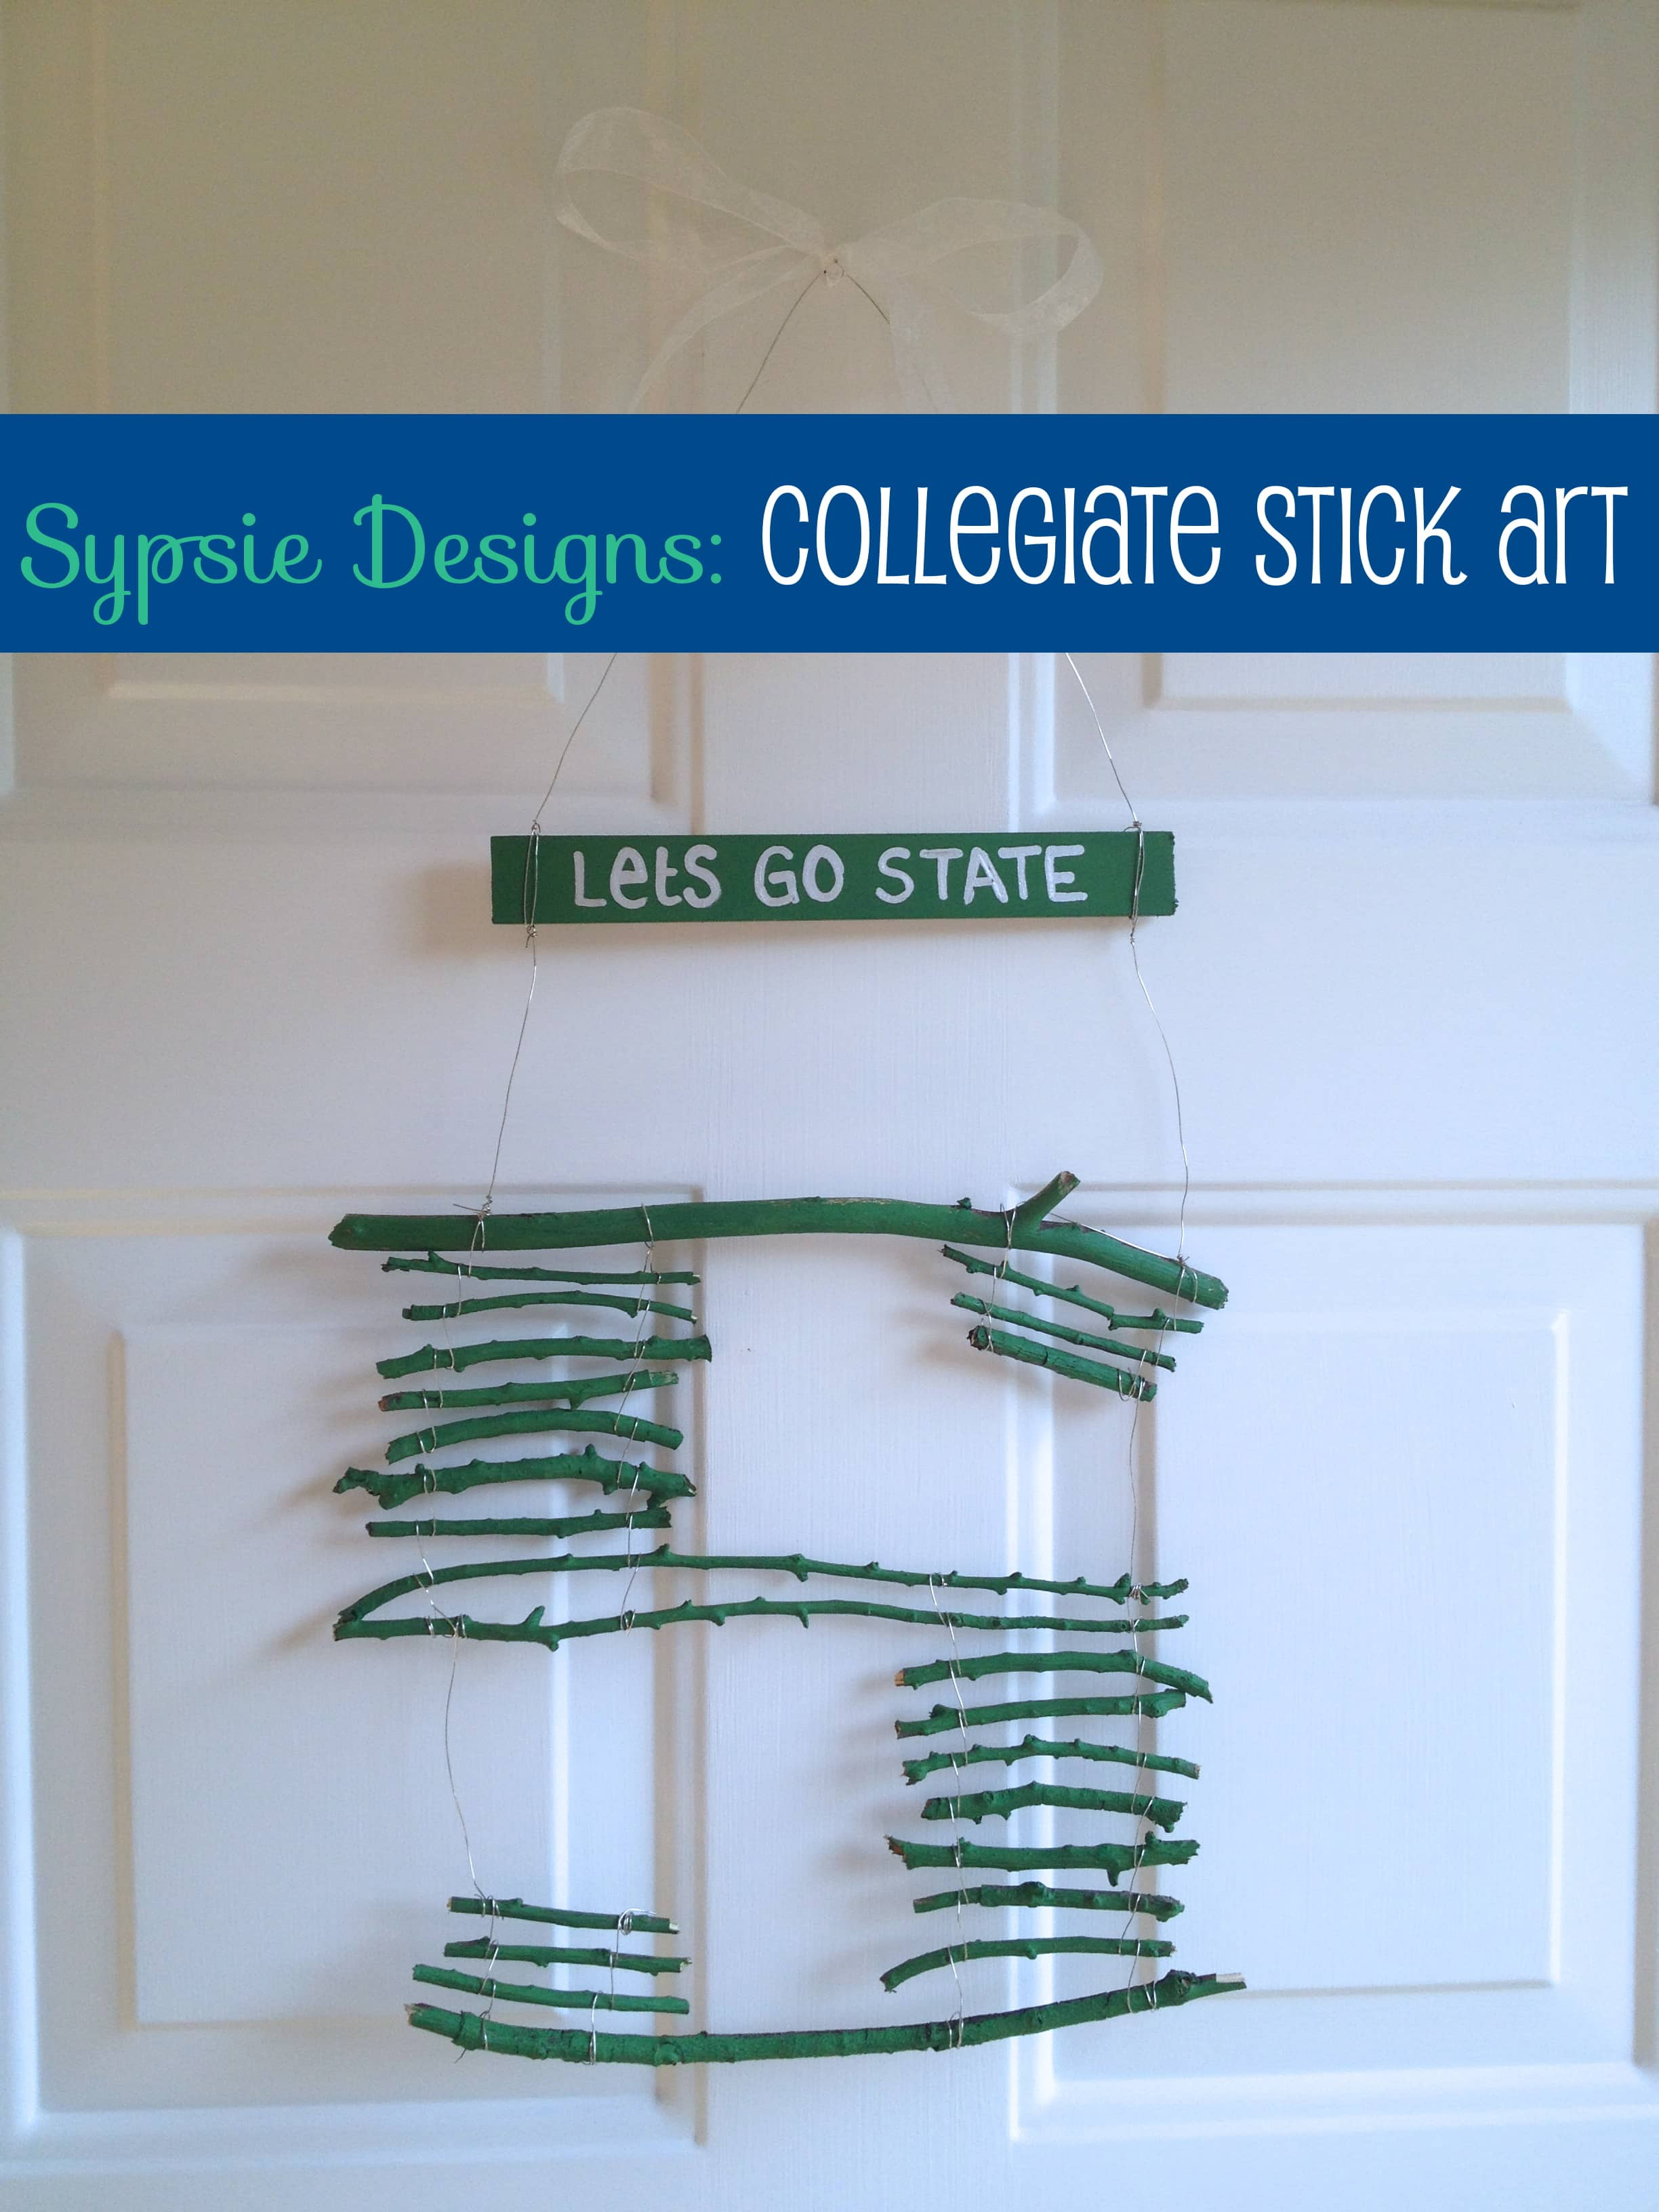 Collegiate Stick Art